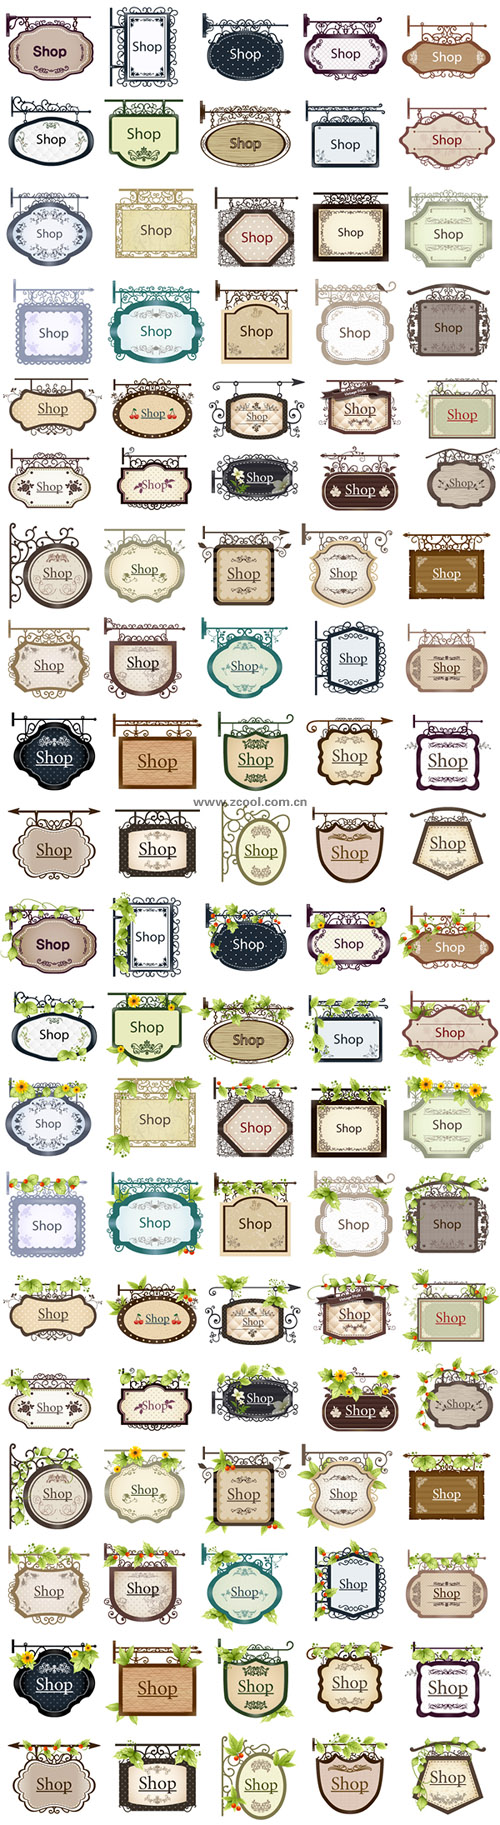 free vector 100 decorative vector listed shop